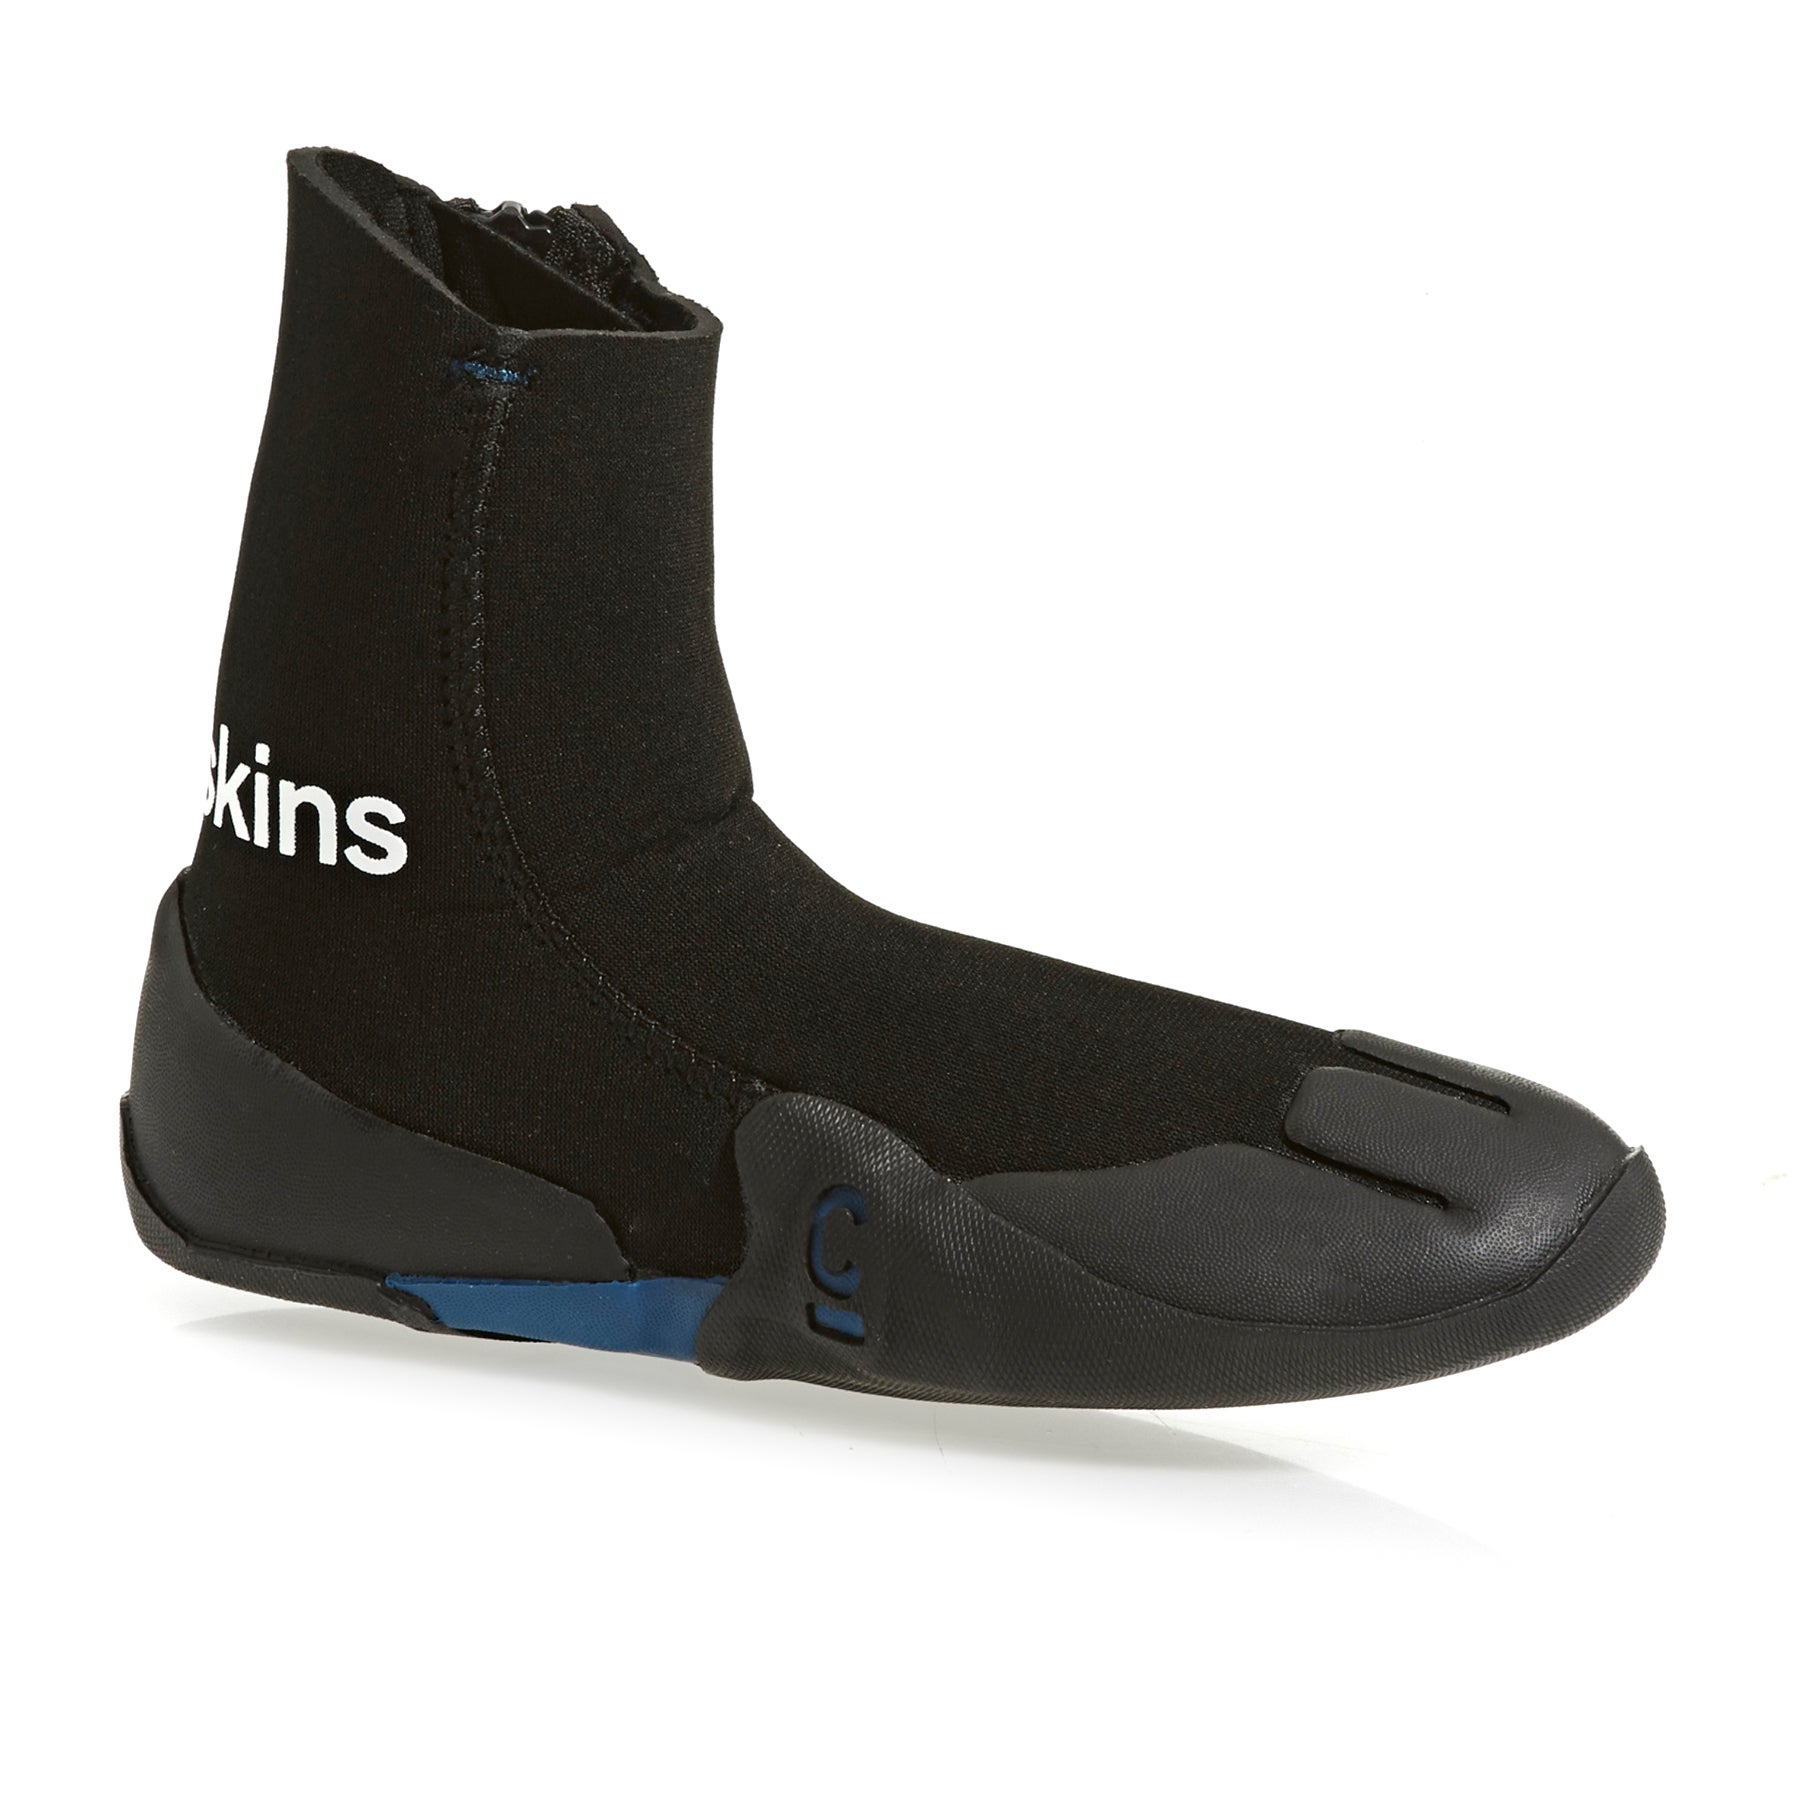 C-Skins Legend 3/5mm GBS Zipped Round Toe Kids Wetsuit Boots - Black Ocean